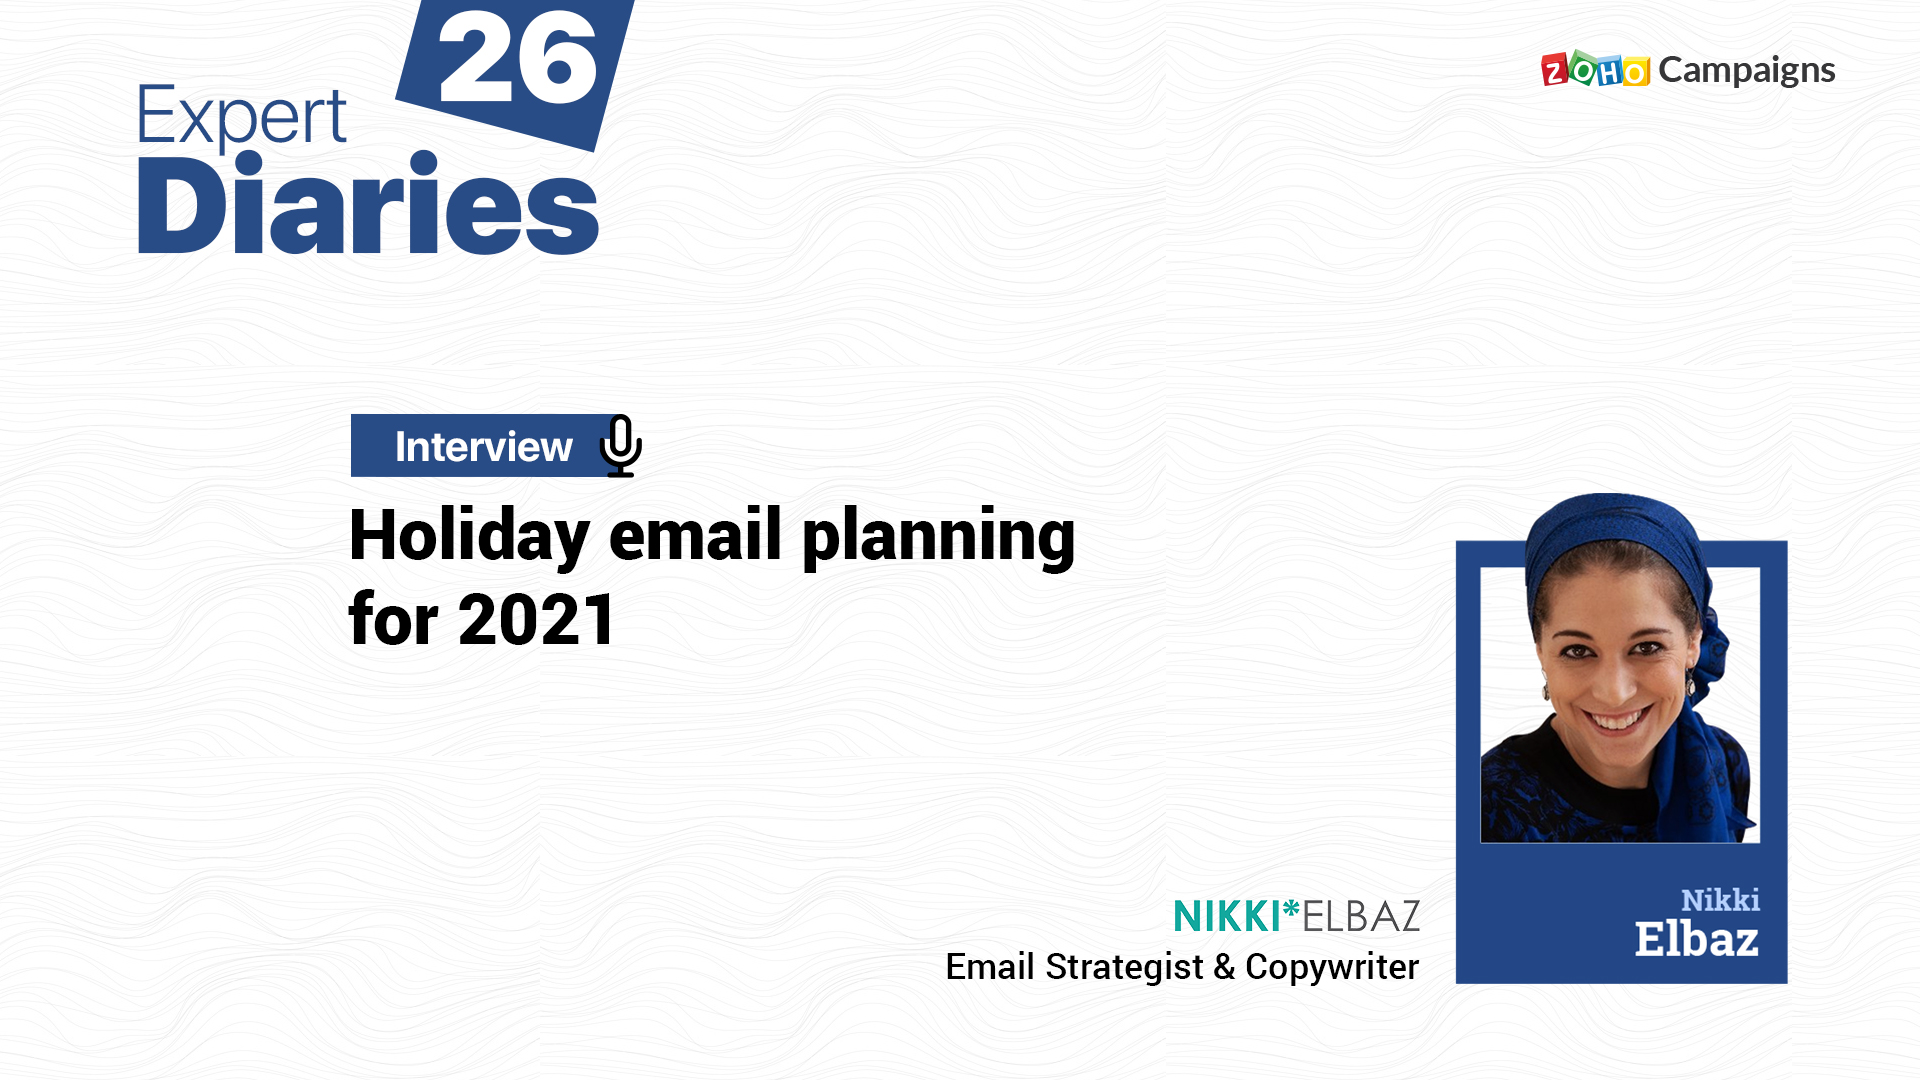 Holiday email planning for 2021